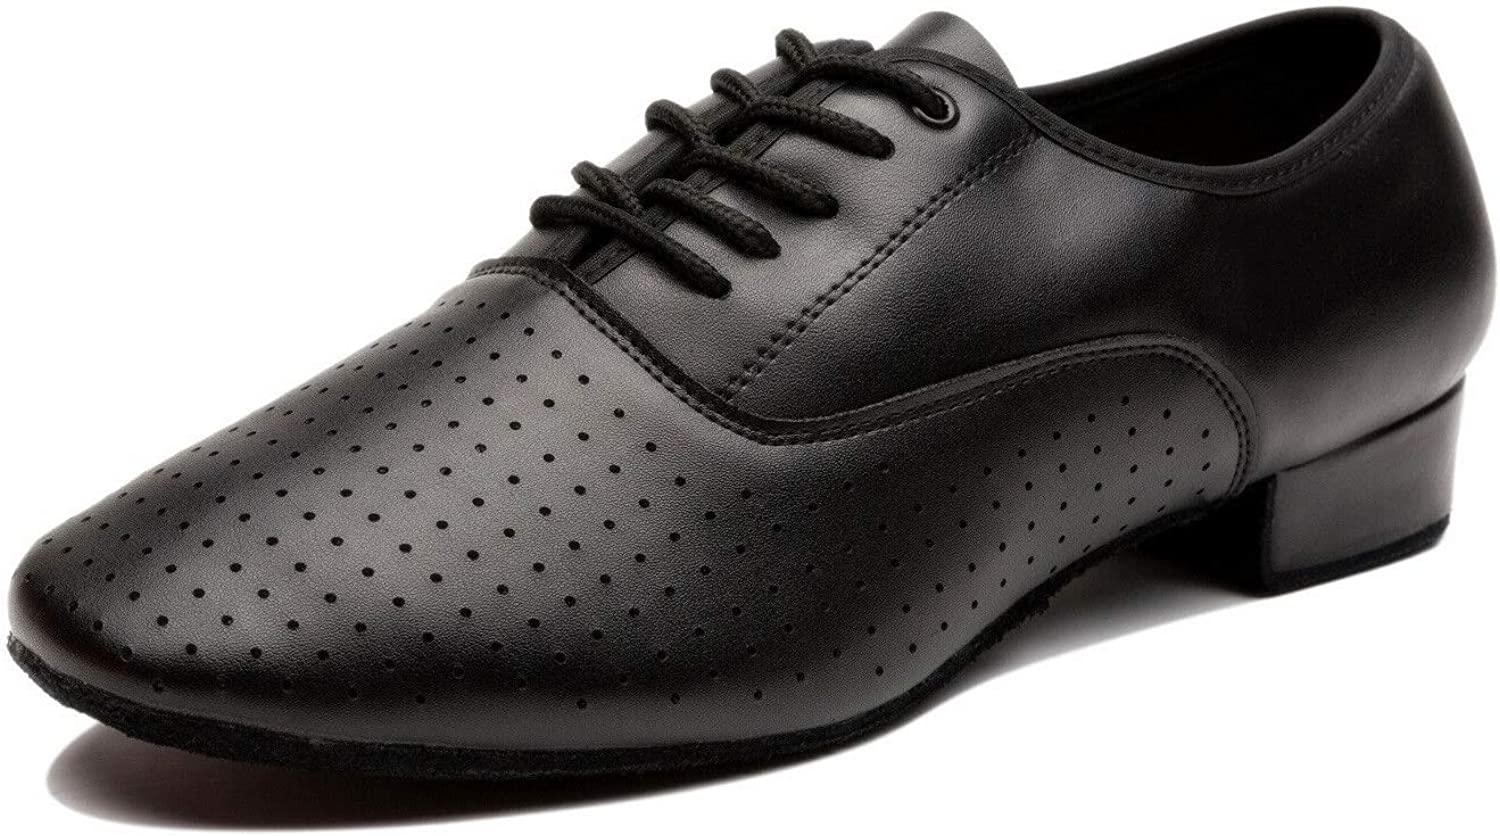 NLeahershoe Breathable Lace-up Dancing Leather Latin shoes for Men Salsa, Tango,Ballroom,Viennese Waltz